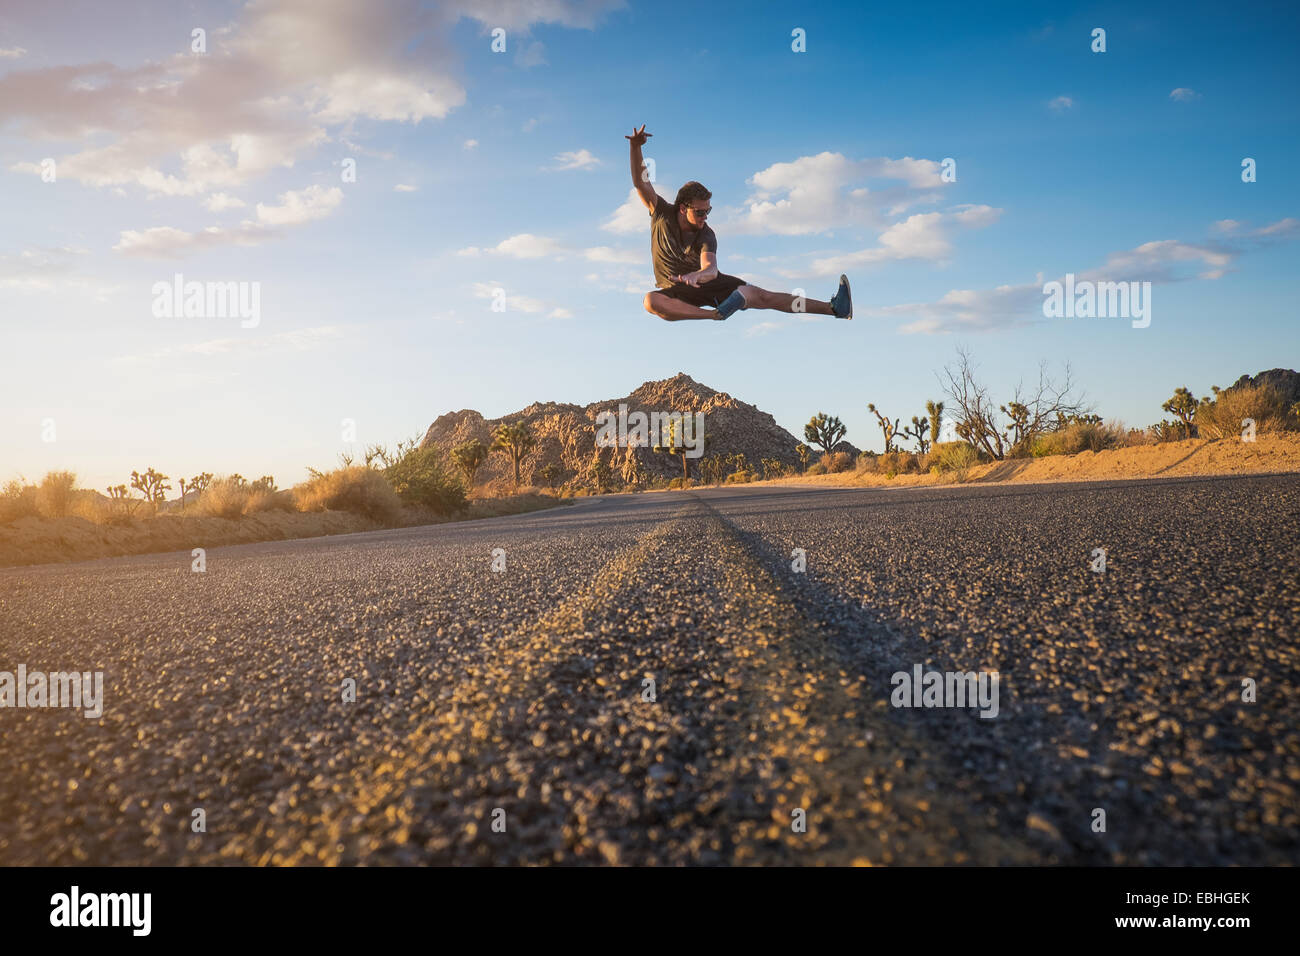 Man doing flying kick, Joshua Tree National Park, California, US - Stock Image